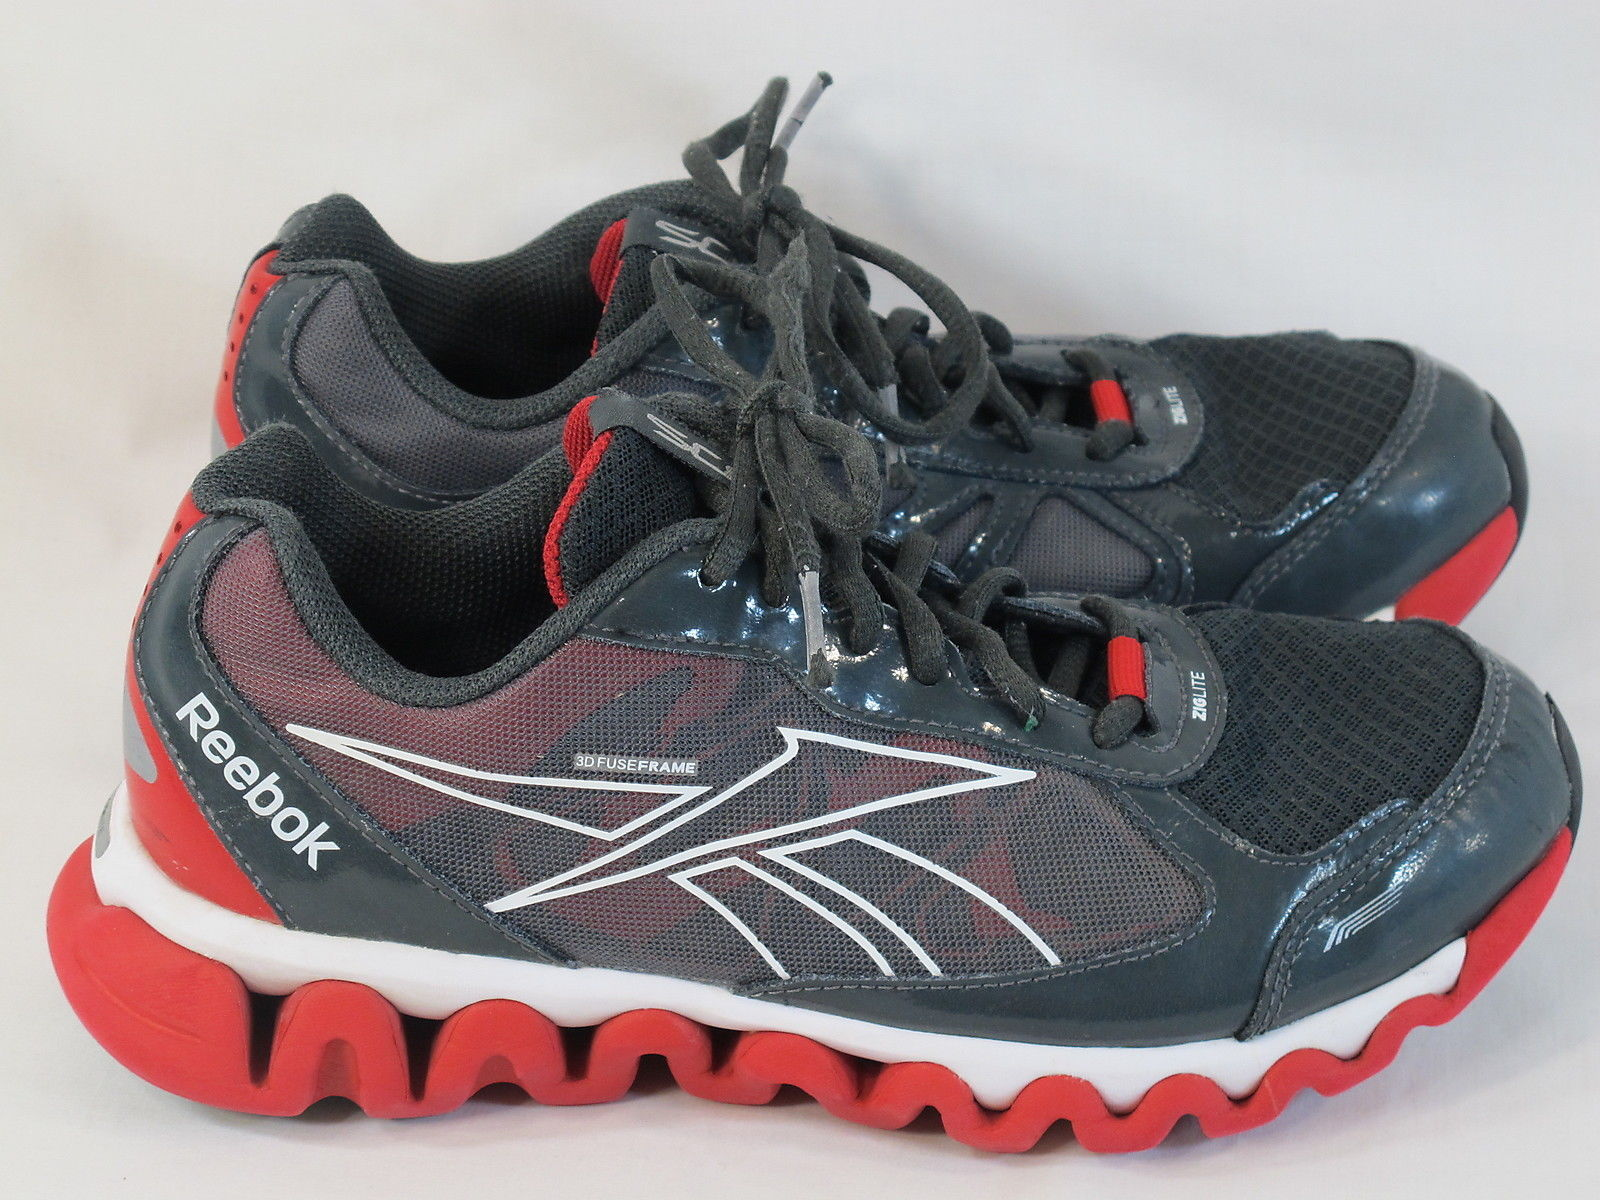 57. 57. Previous. Reebok ZigLite Rush Lightweight Running Shoes Men s Size  ... 6eaacdb96